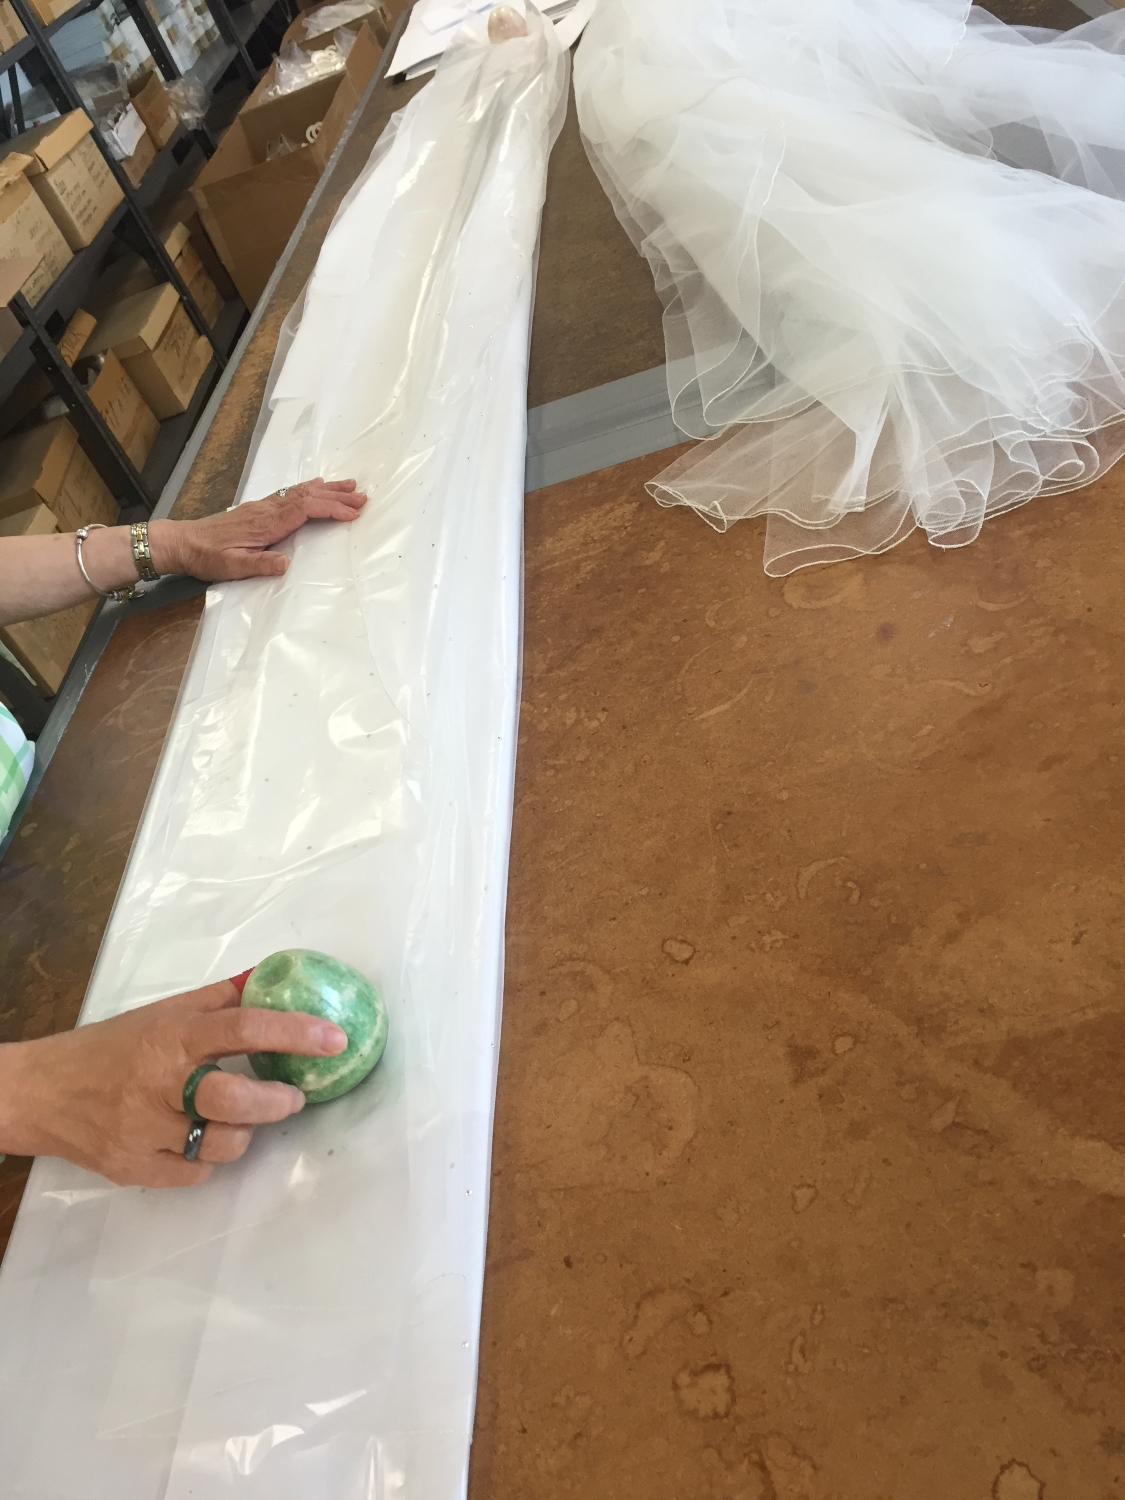 FOLDING  - There is an art to ensuring that all our hard work arrives at the bridal store in proper condition to be carefully unfolded, given a light steam, and present its magnificence to each bride.